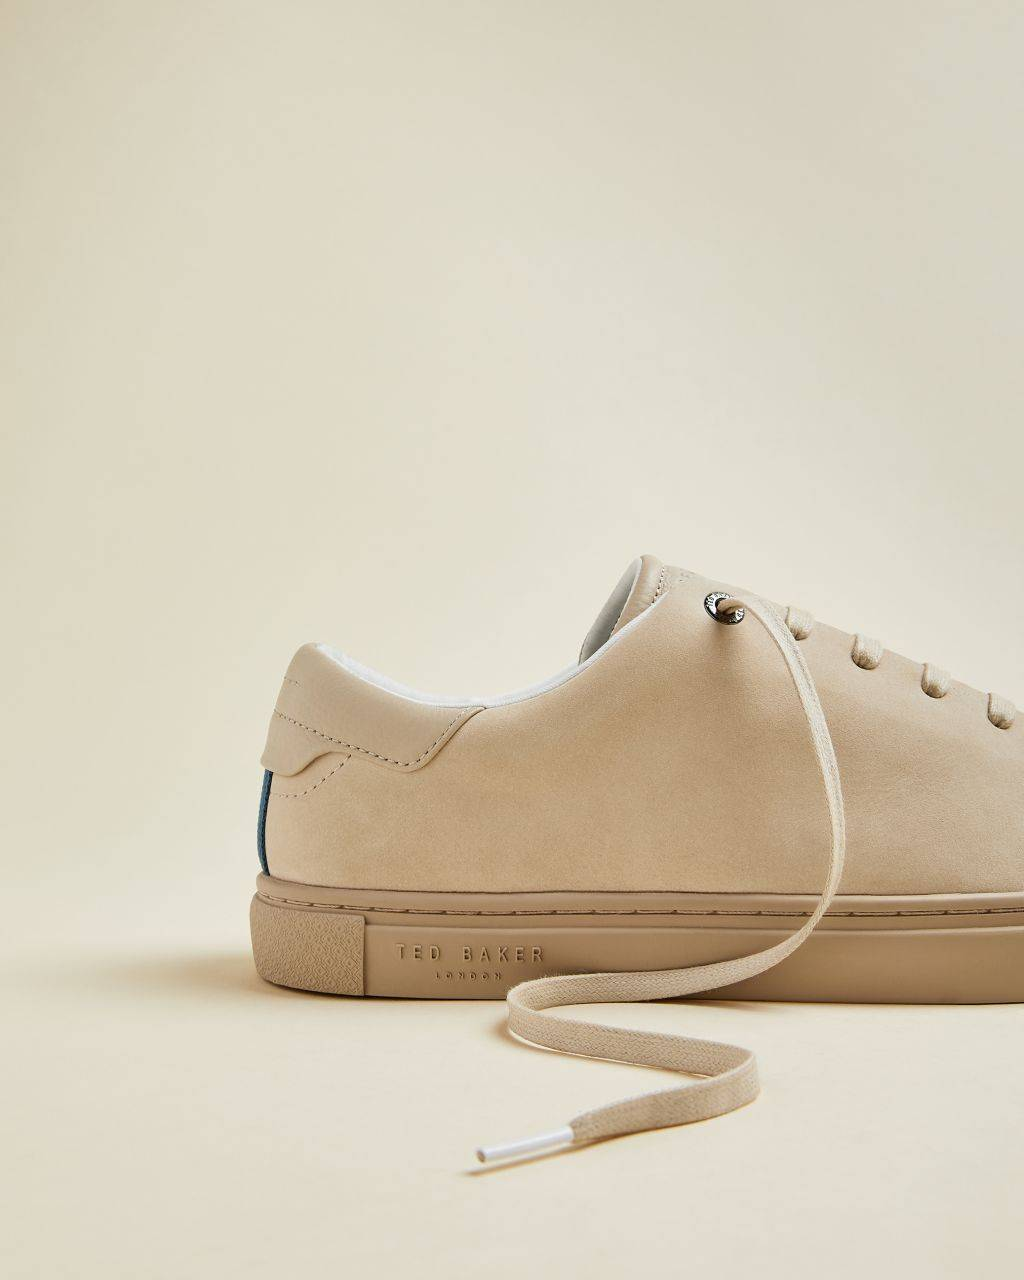 Ted Baker Leather Trainers  - Beige - Size: UK 10 (EU 44)